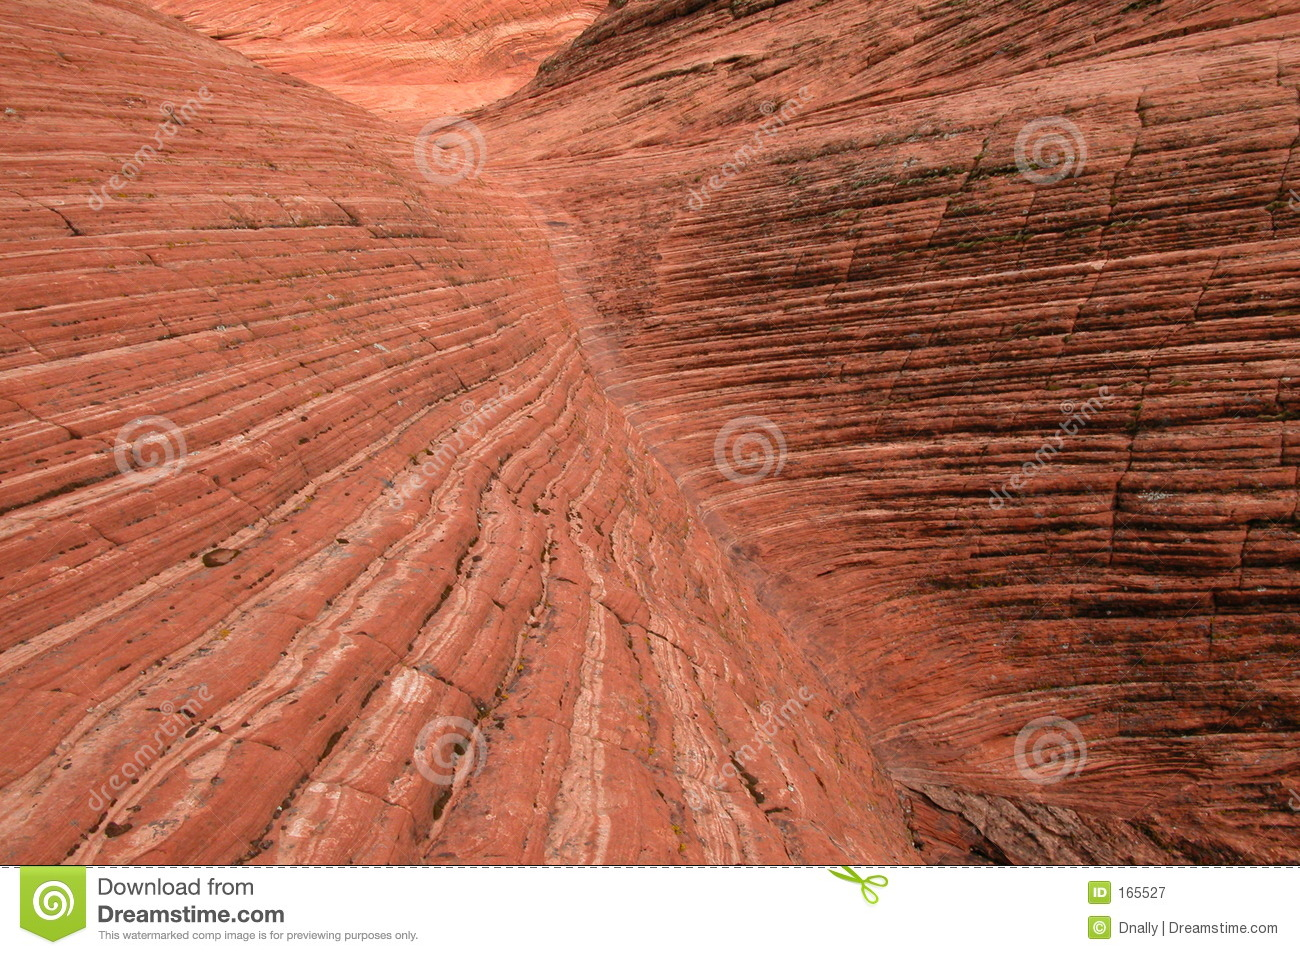 Red Rock Dimensions